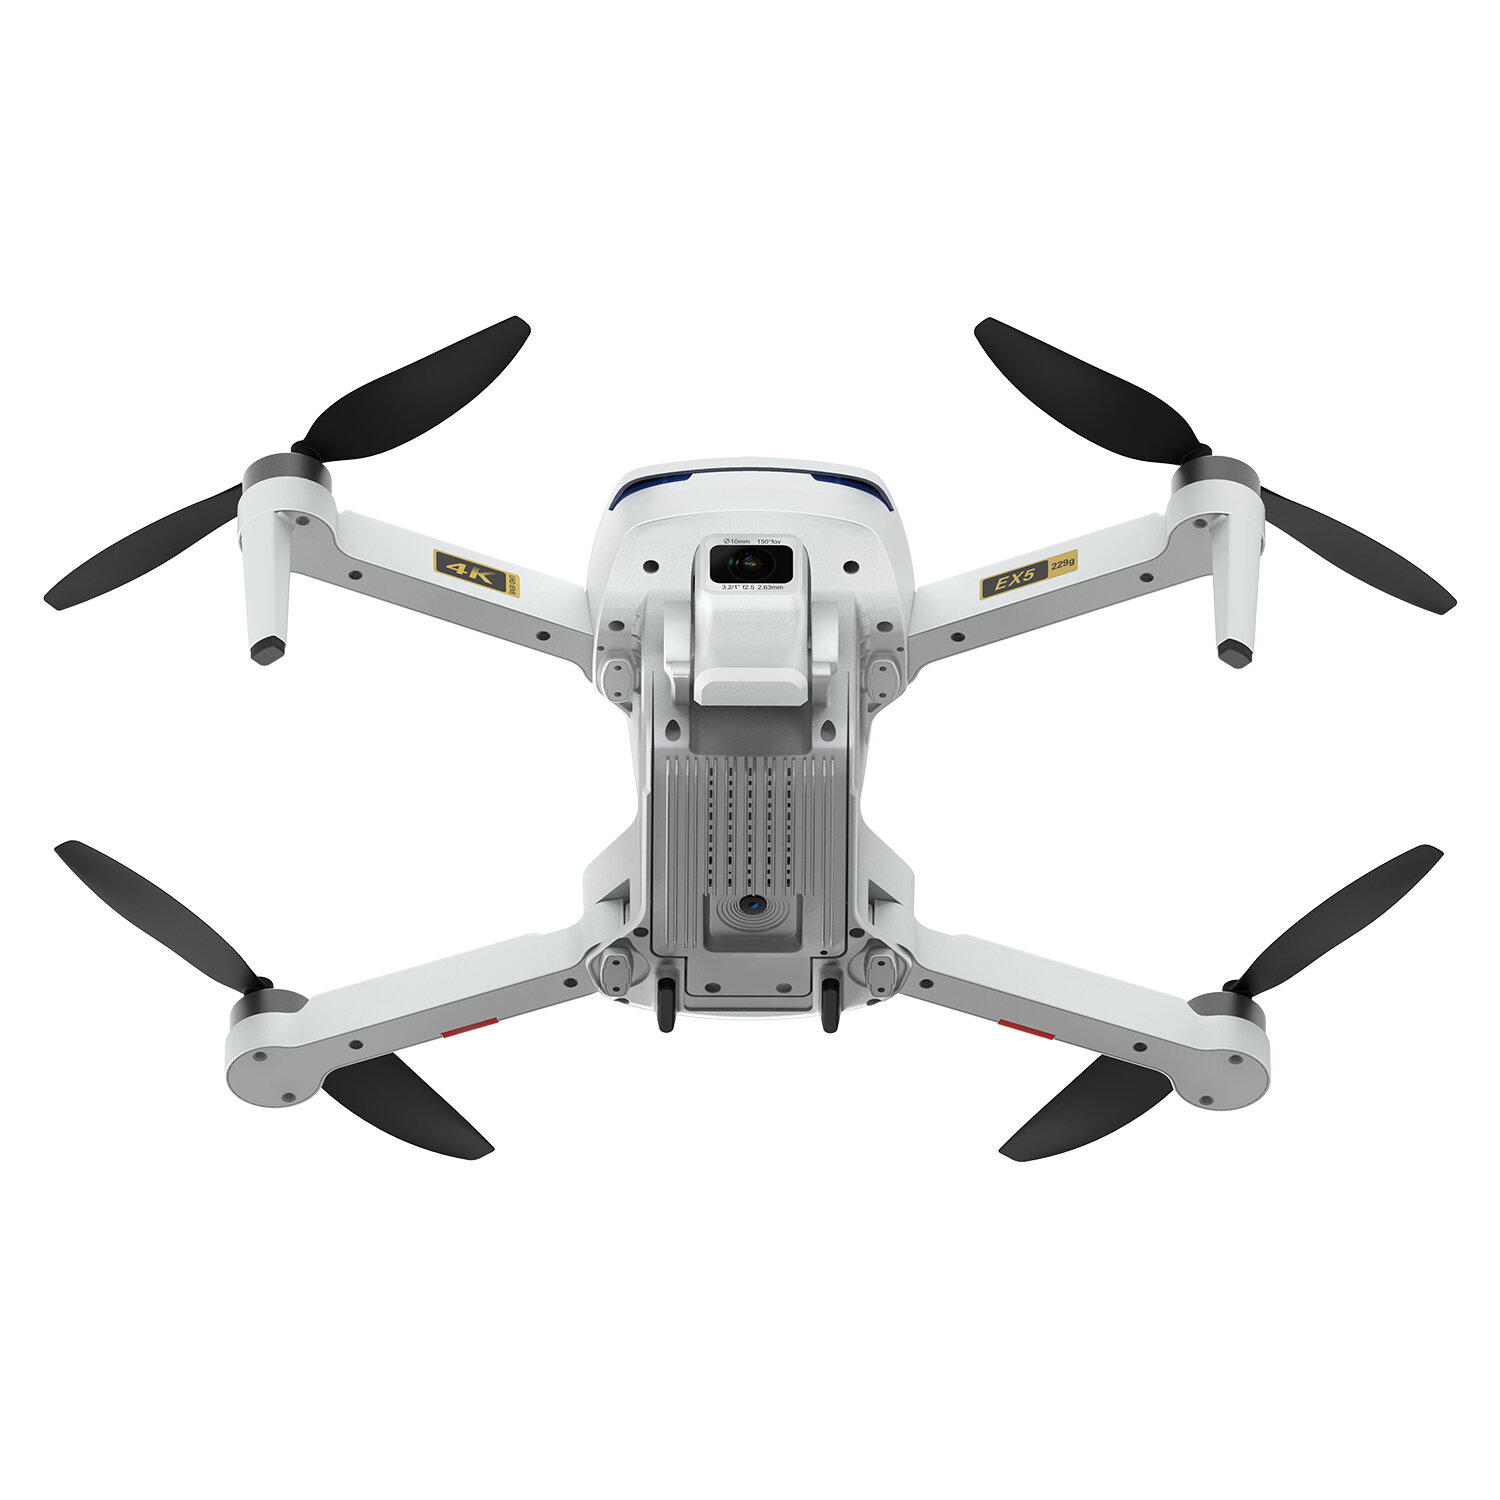 ZLRC SG107 HD Aerial Folding Drone With Switchable 4K Optical Flow Dual Cameras 50X Zoom RC Quadcopter RTF - 6